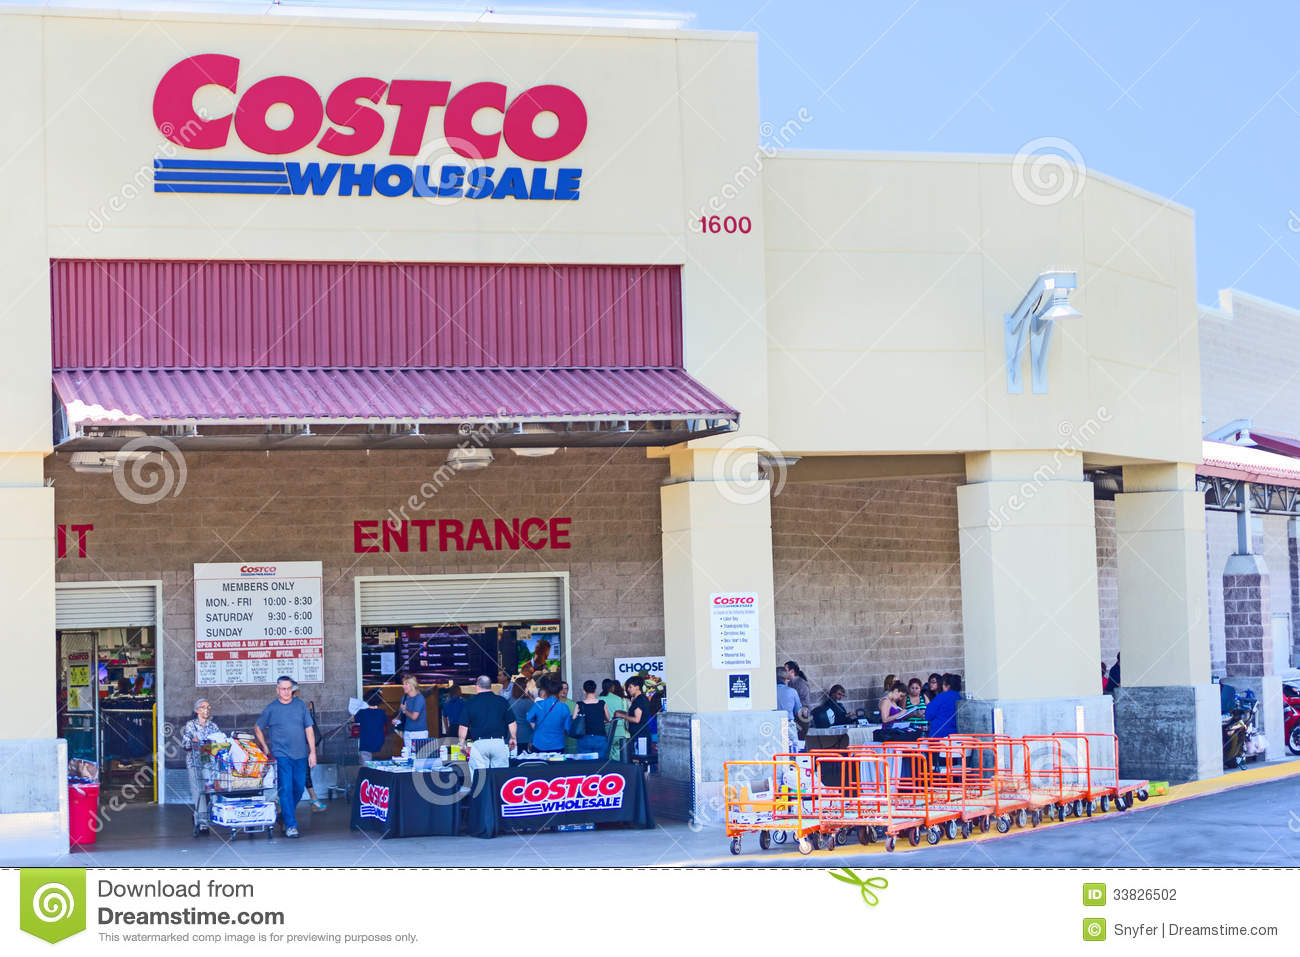 k Followers, 1 Following, Posts - See Instagram photos and videos from Costco (@costco).